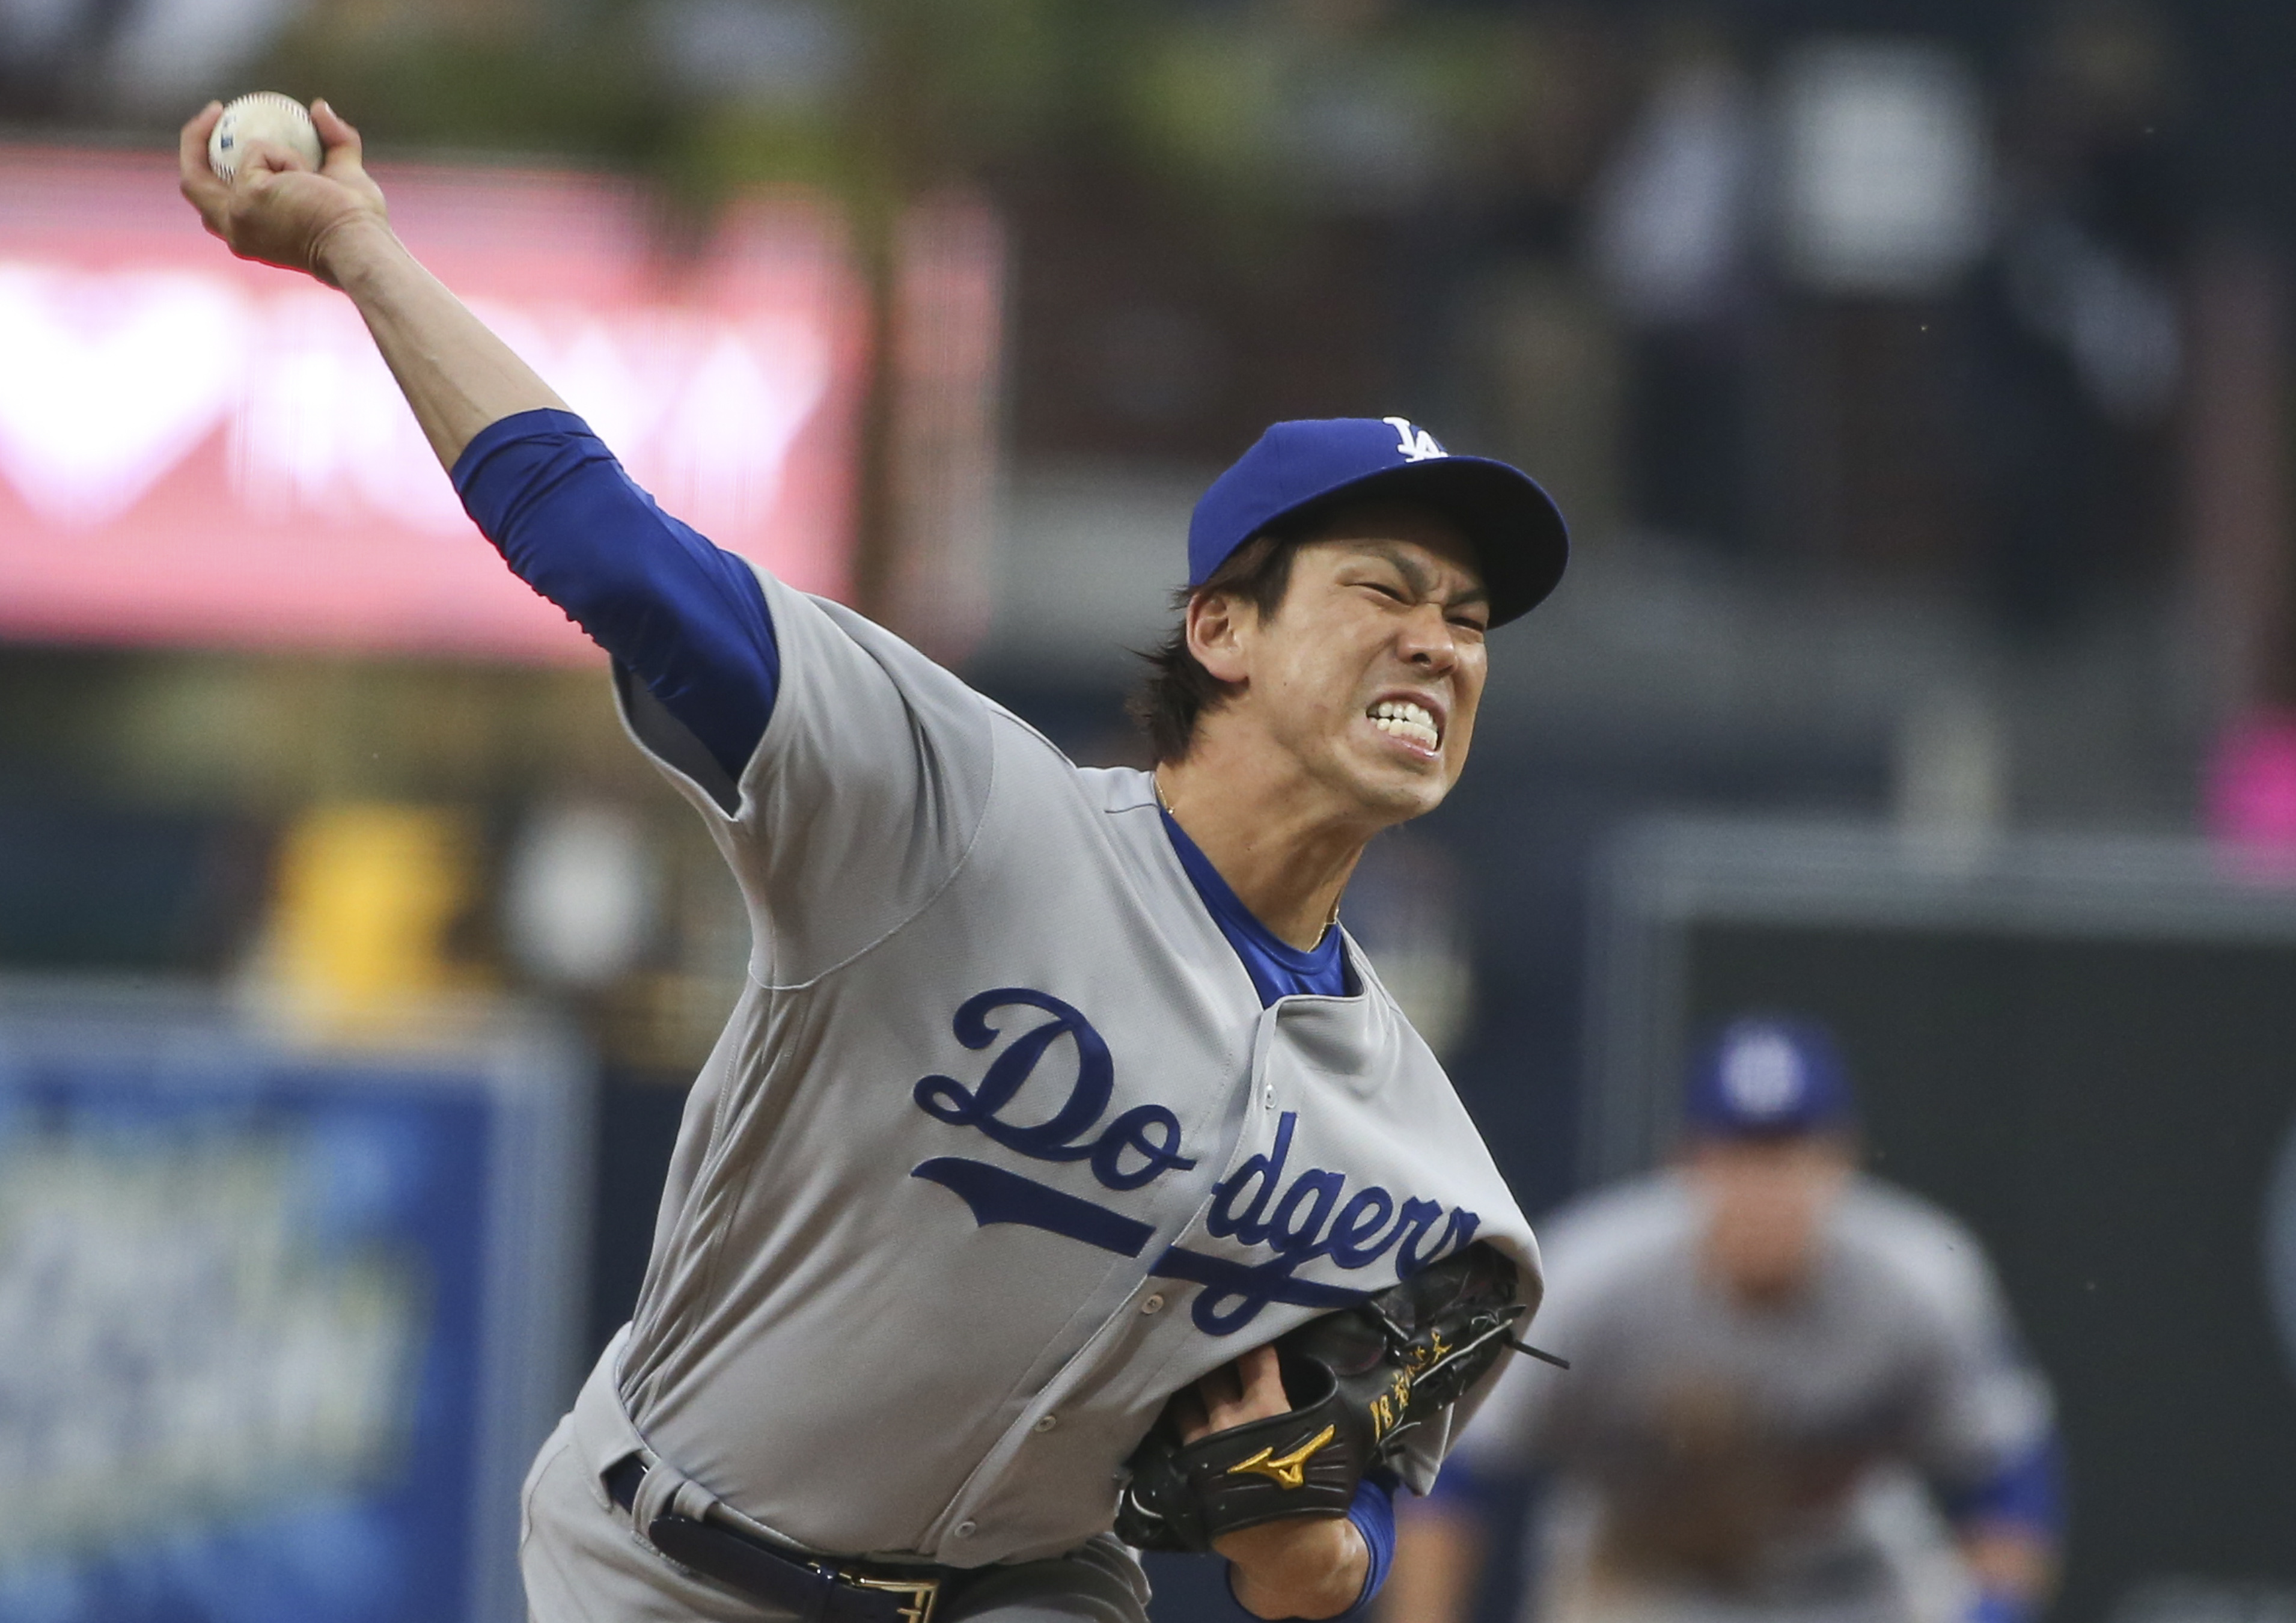 Los Angeles Dodgers starting pitcher Kenta Maeda throws against the San Diego Padres in the first inning of a baseball game Wednesday, April 6, 2016, in San Diego. (AP Photo/Lenny Ignelzi)